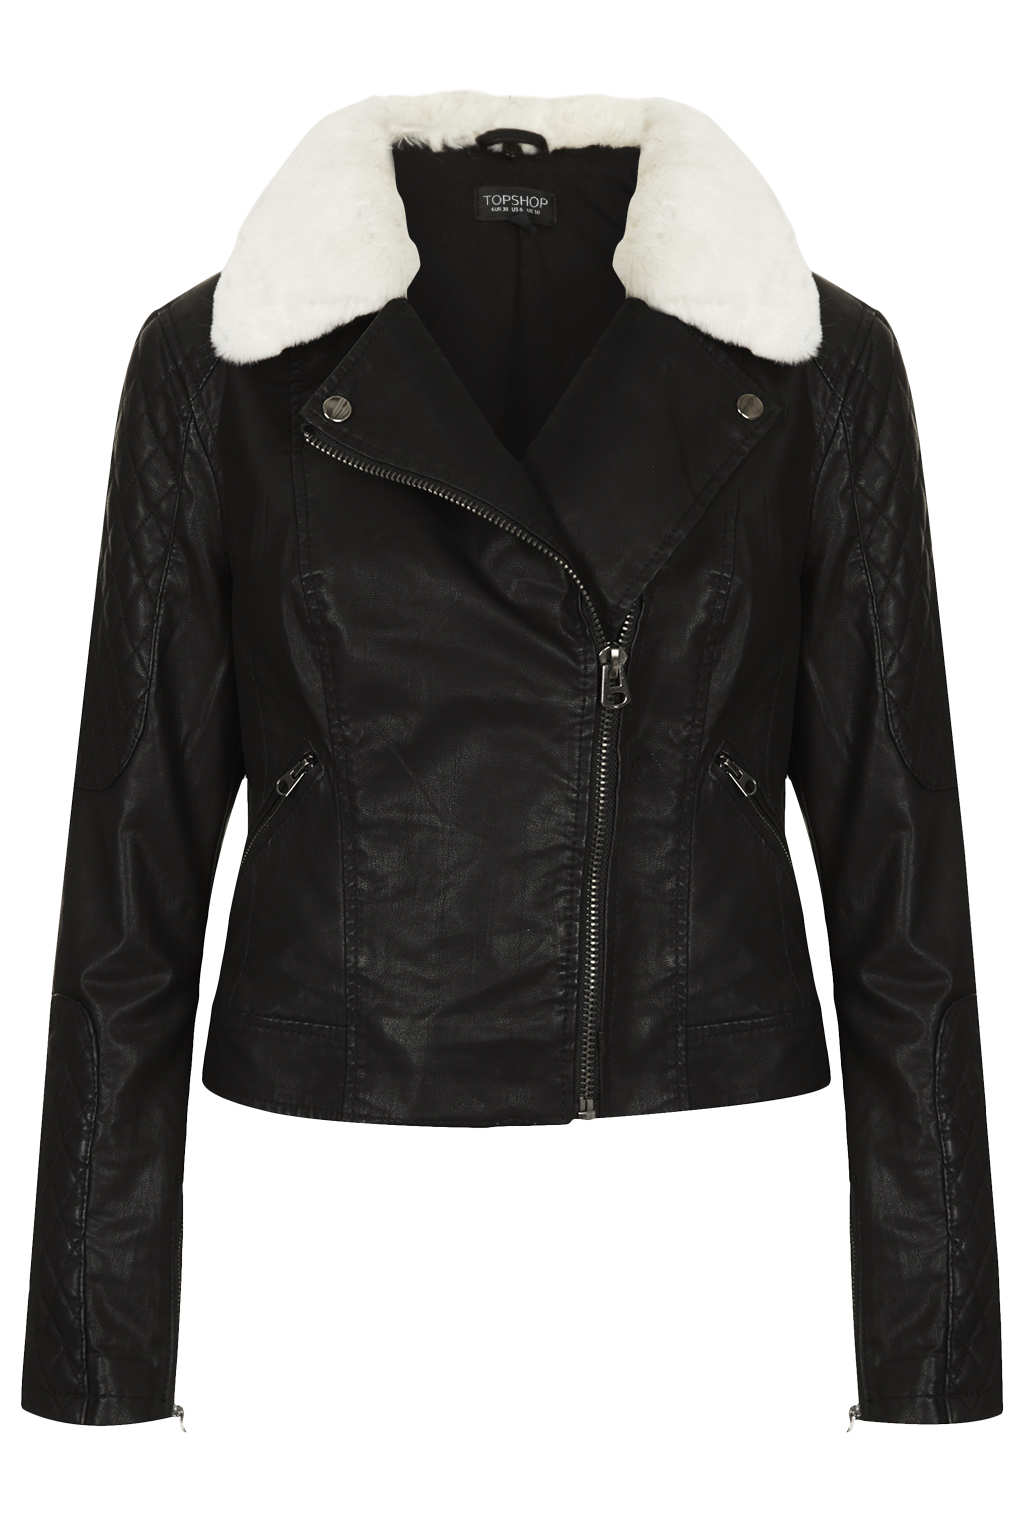 Images of Black Leather Jacket With Fur Collar - Reikian